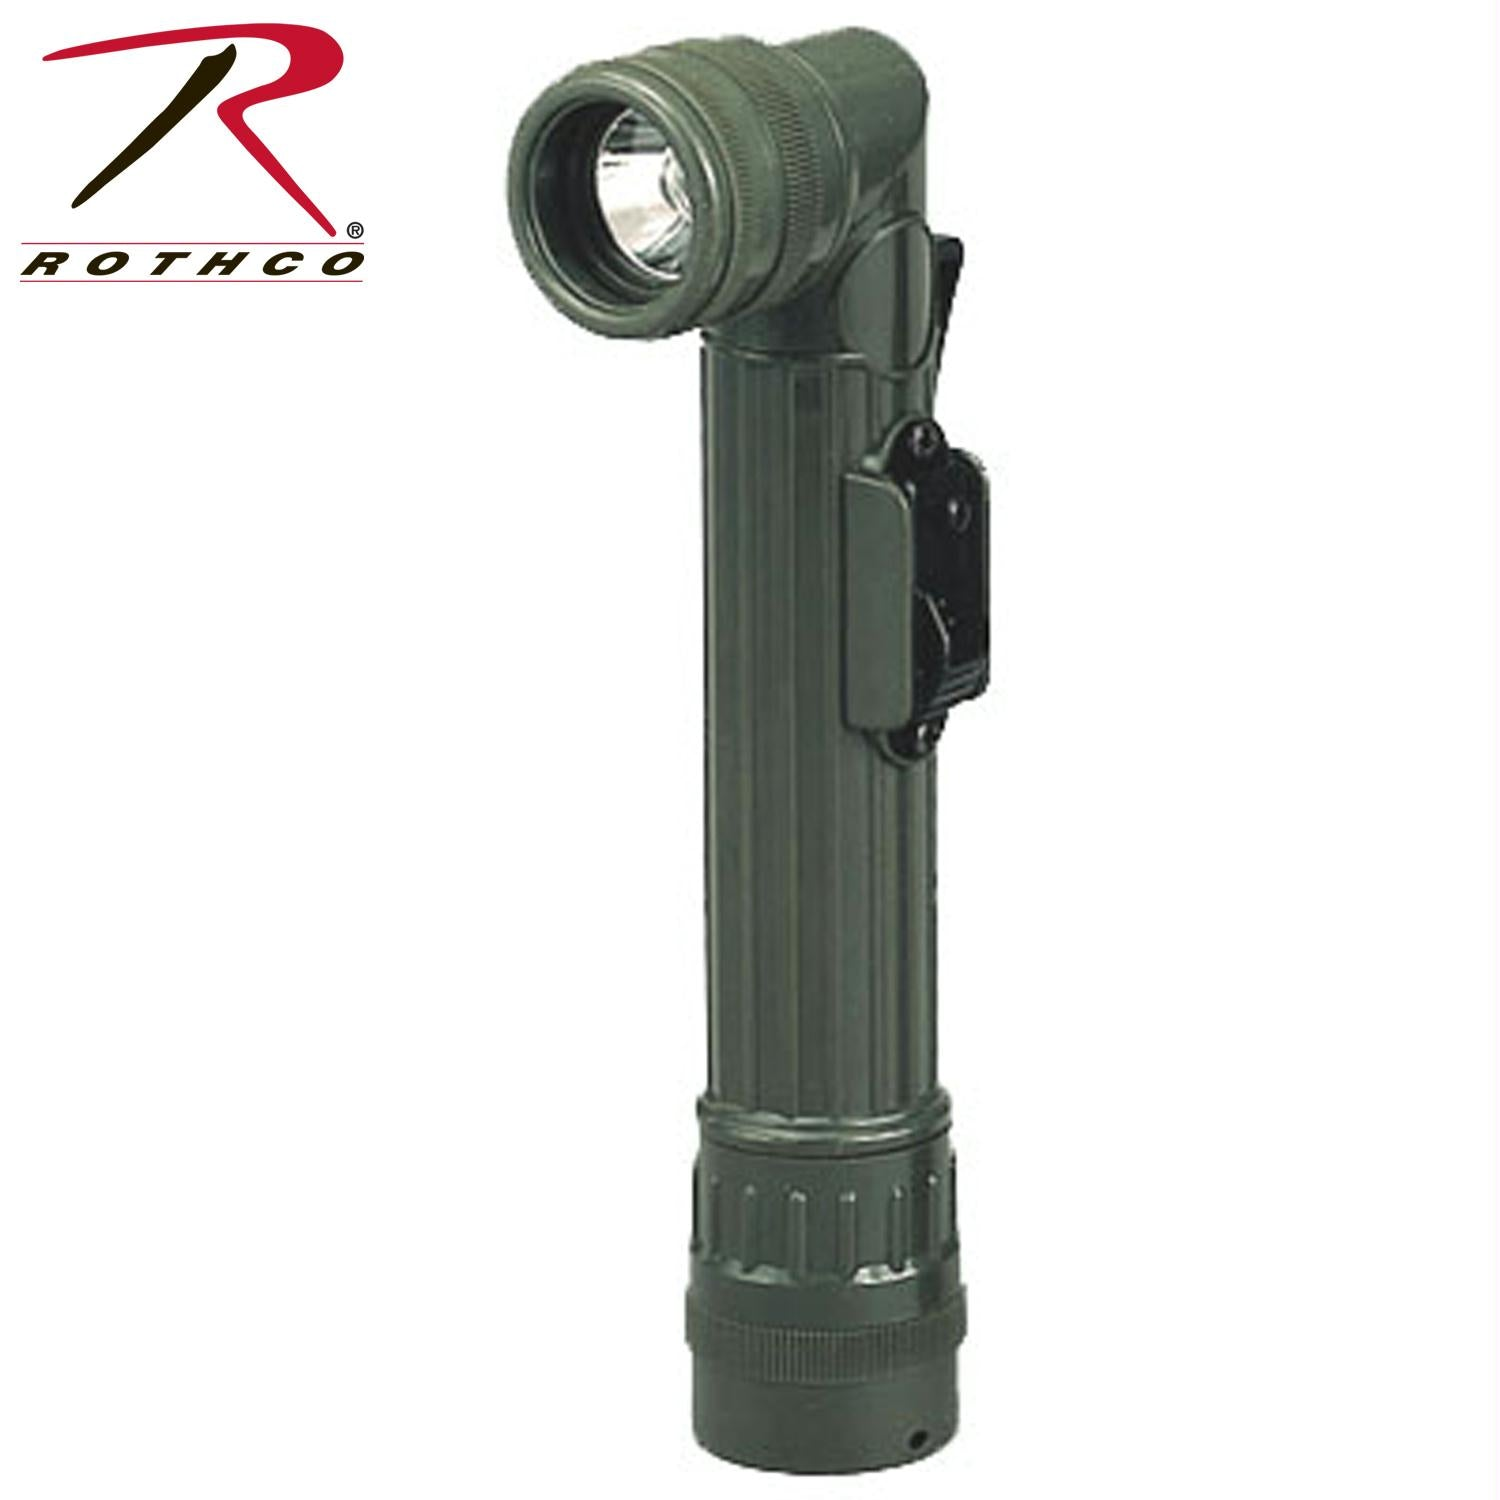 Rothco Mini Army Style Flashlight - Olive Drab